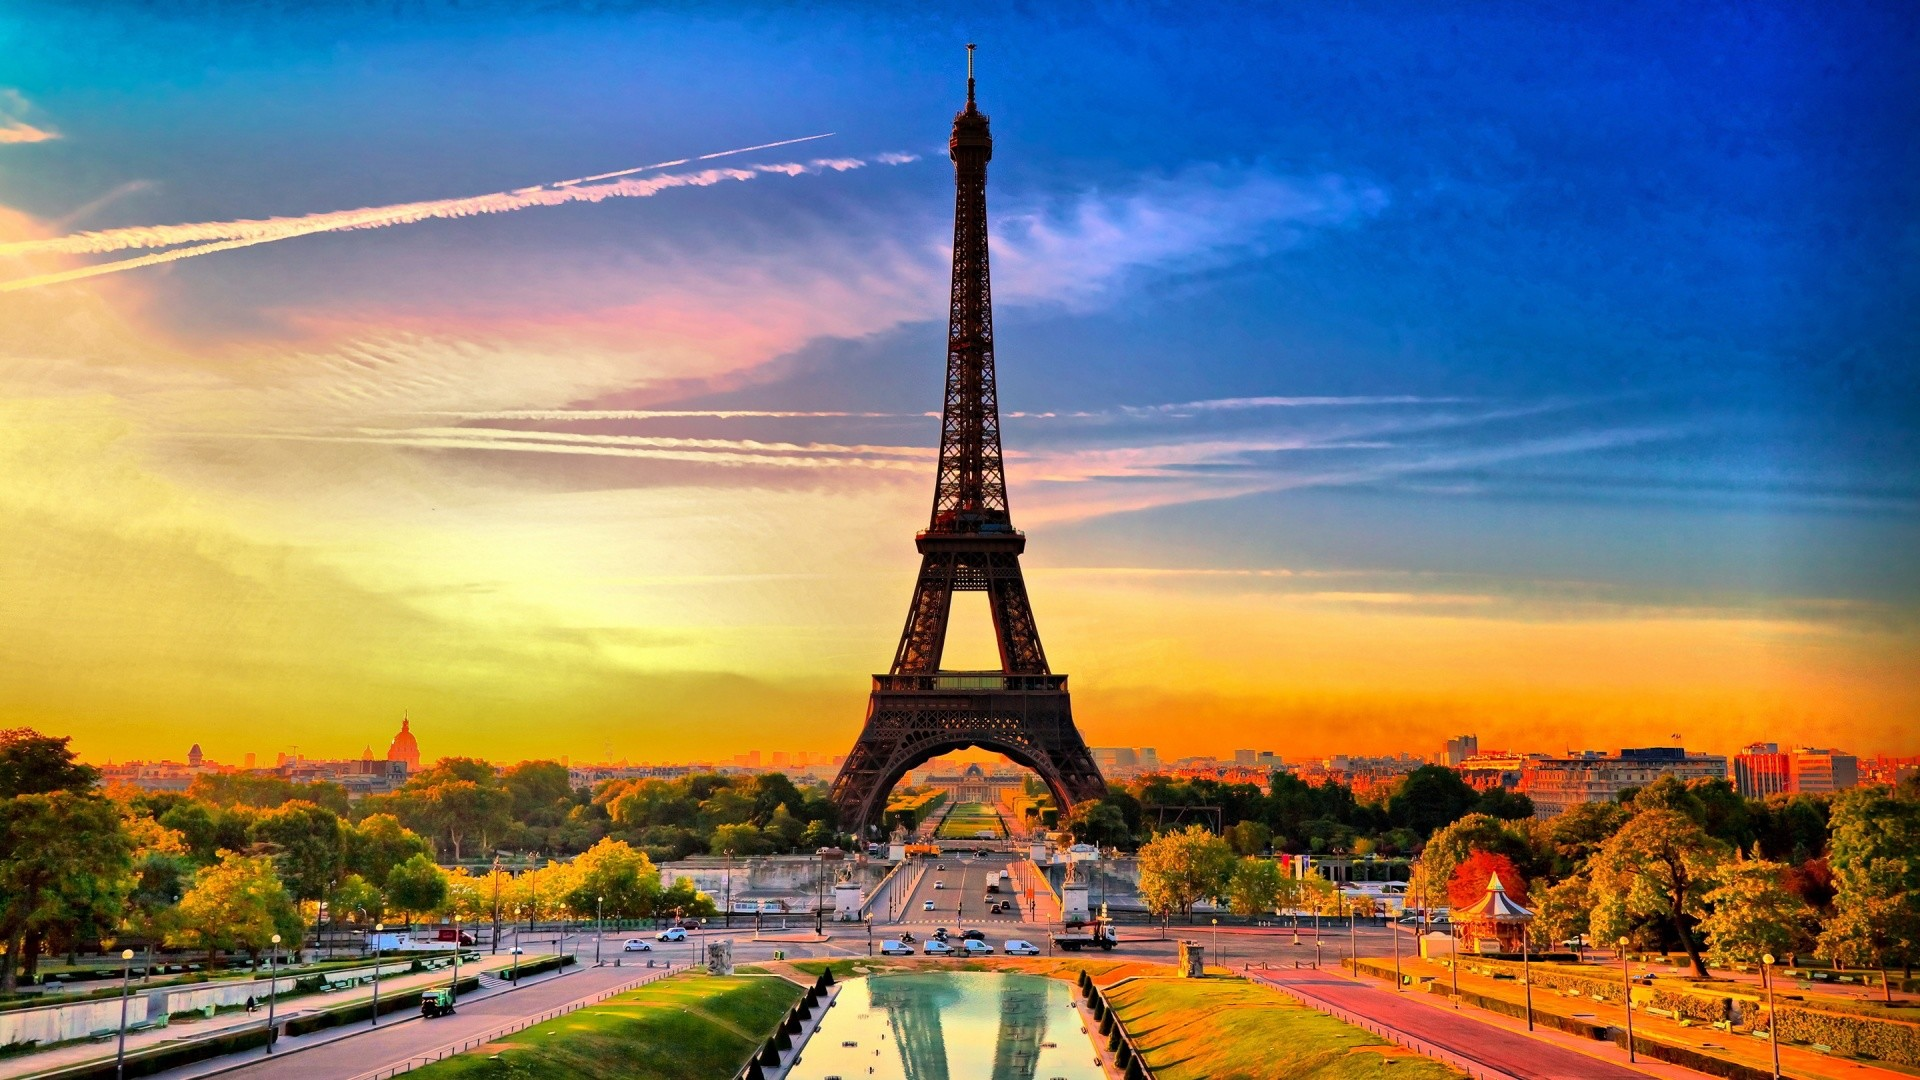 Related Wallpapers from Washington DC Wallpaper. France Wallpaper